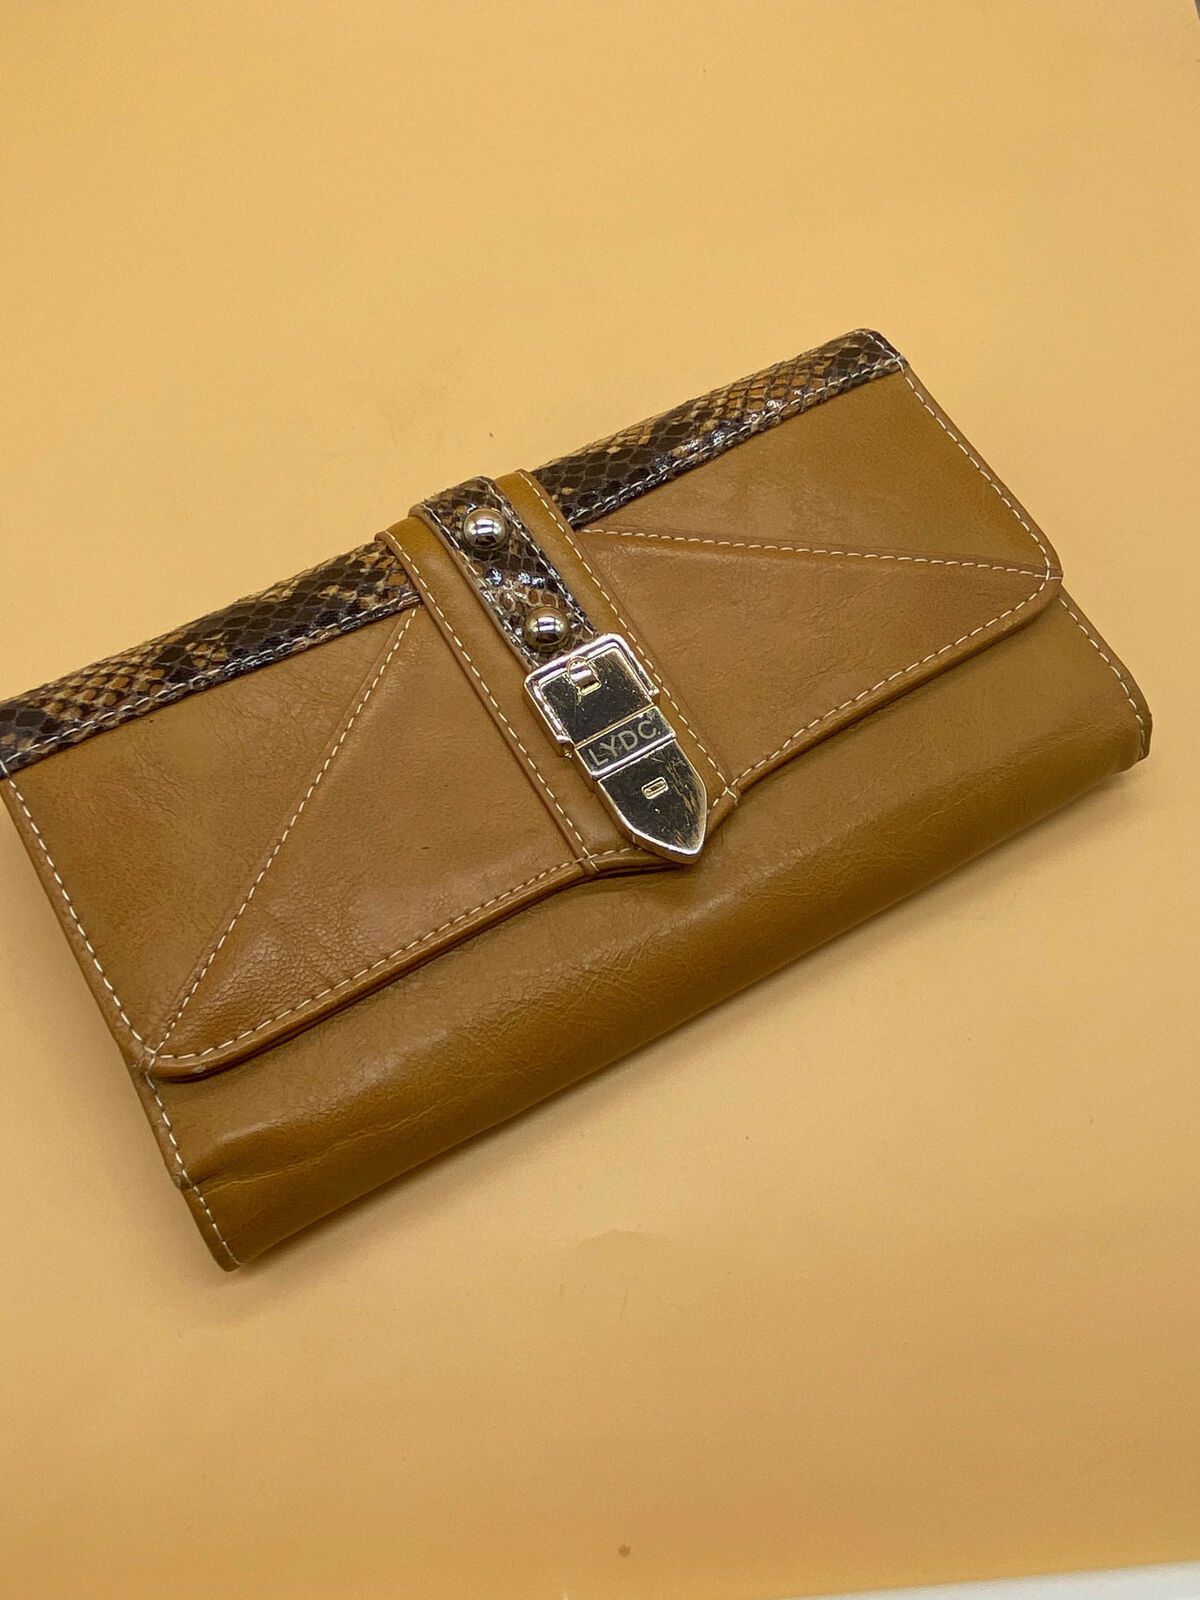 LYDC Brown Faux Leather, Snakeskin and Buckle Detail Ladies Purse